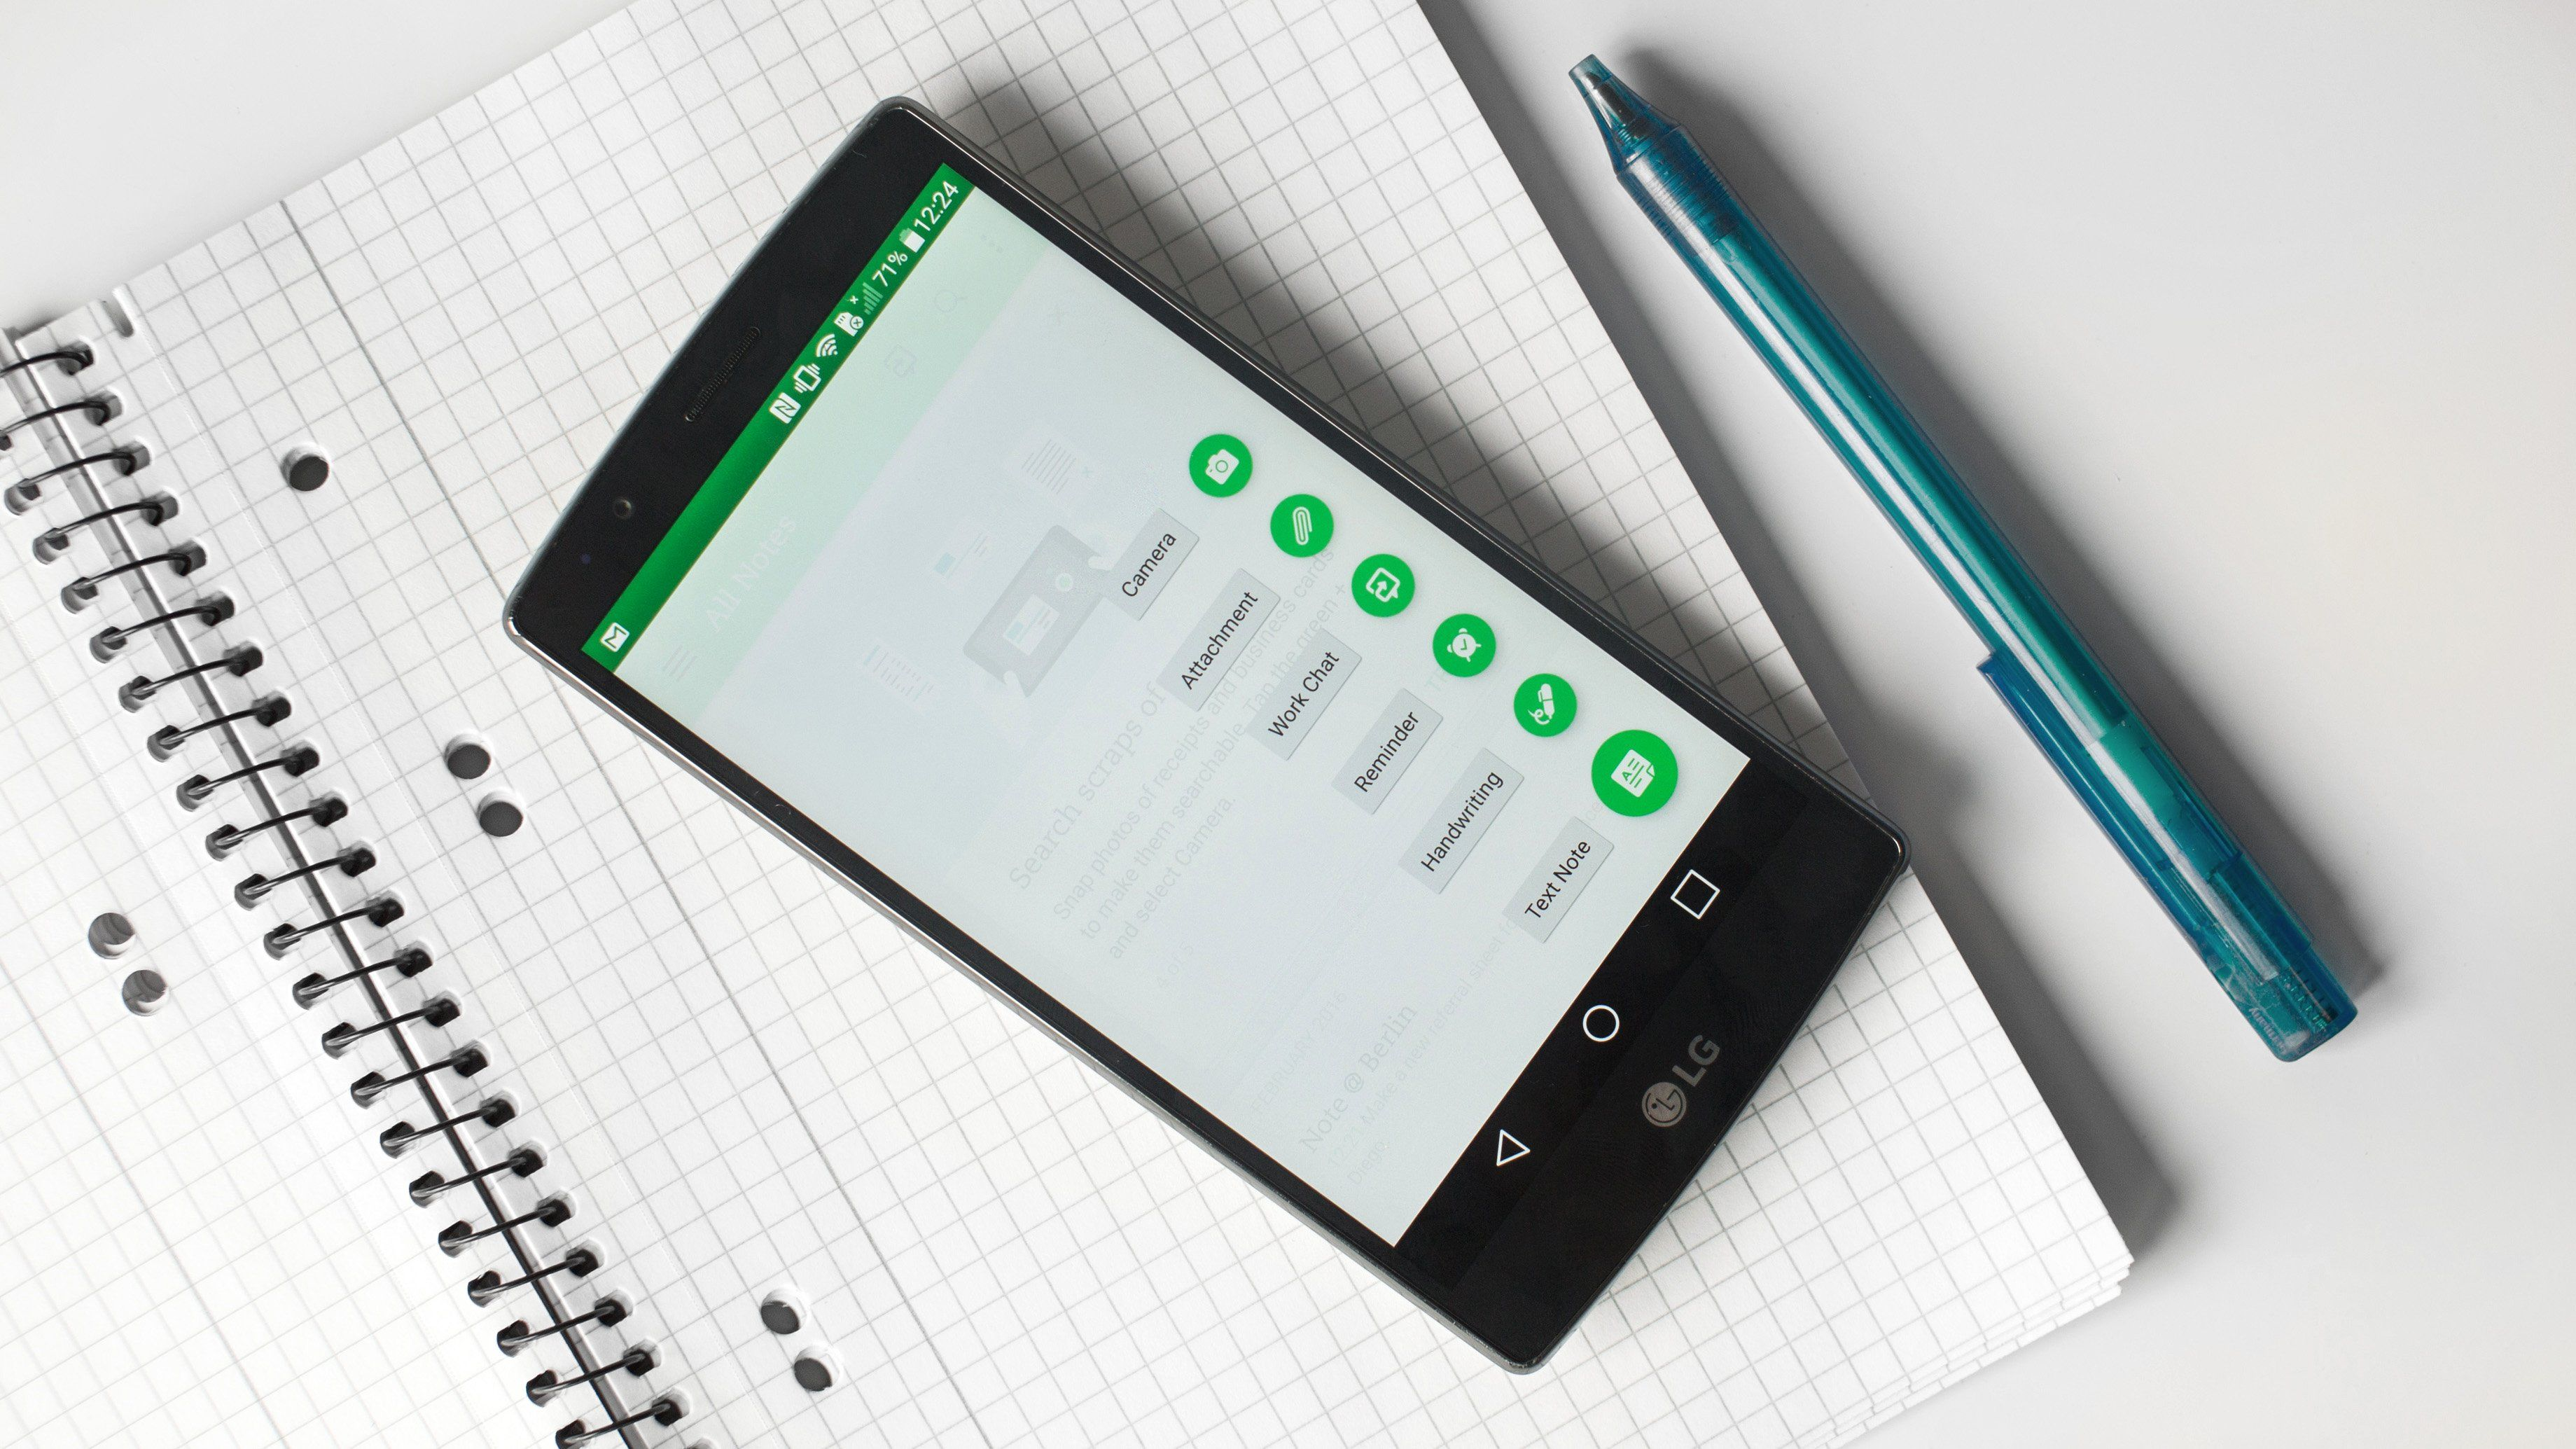 How can you master the art of EVERNOTE? Well, we have six